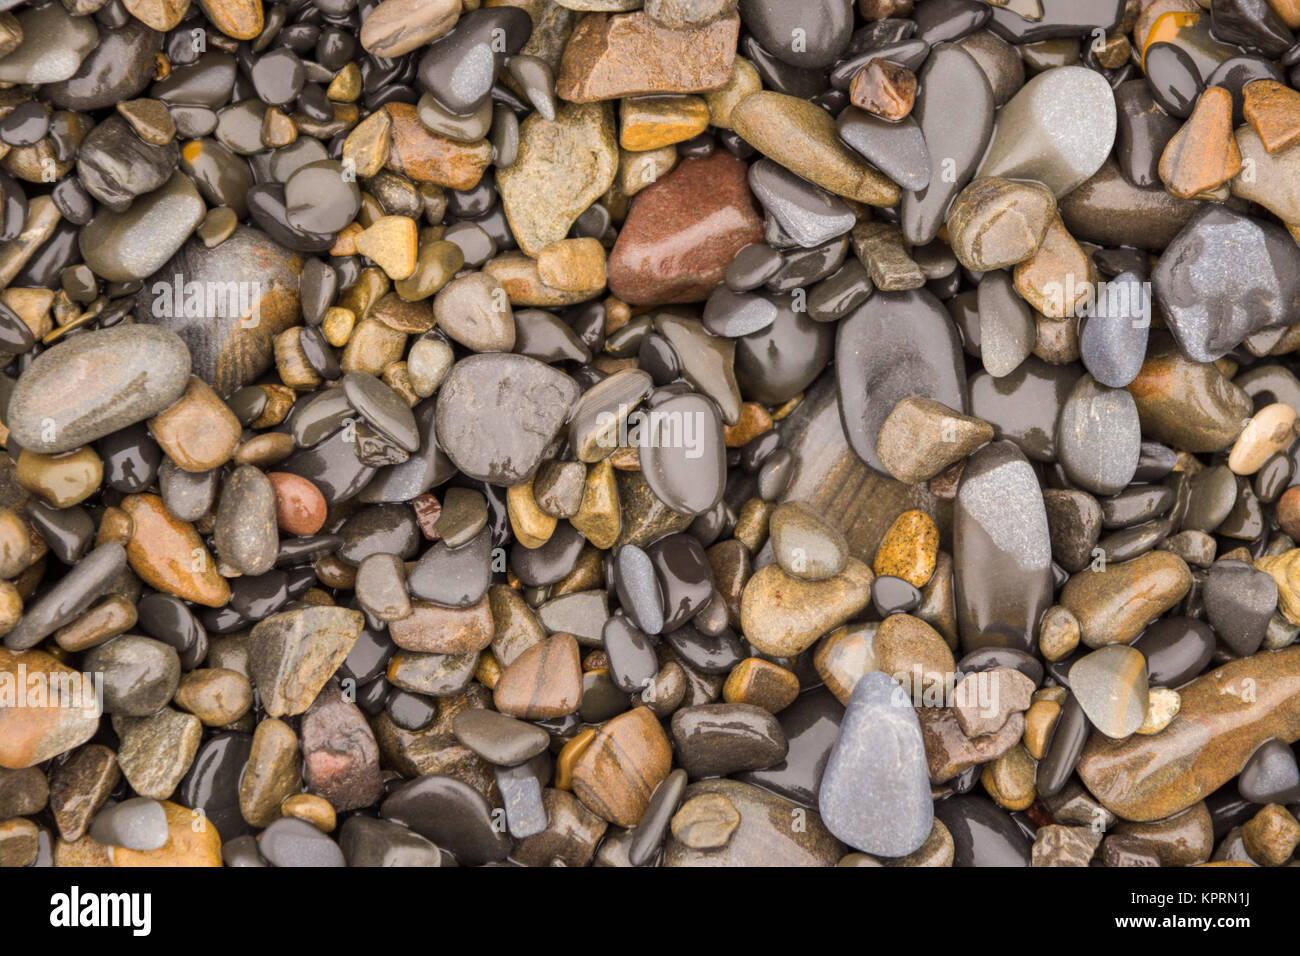 Background texture of wet sea pebbles of medium size - Stock Image